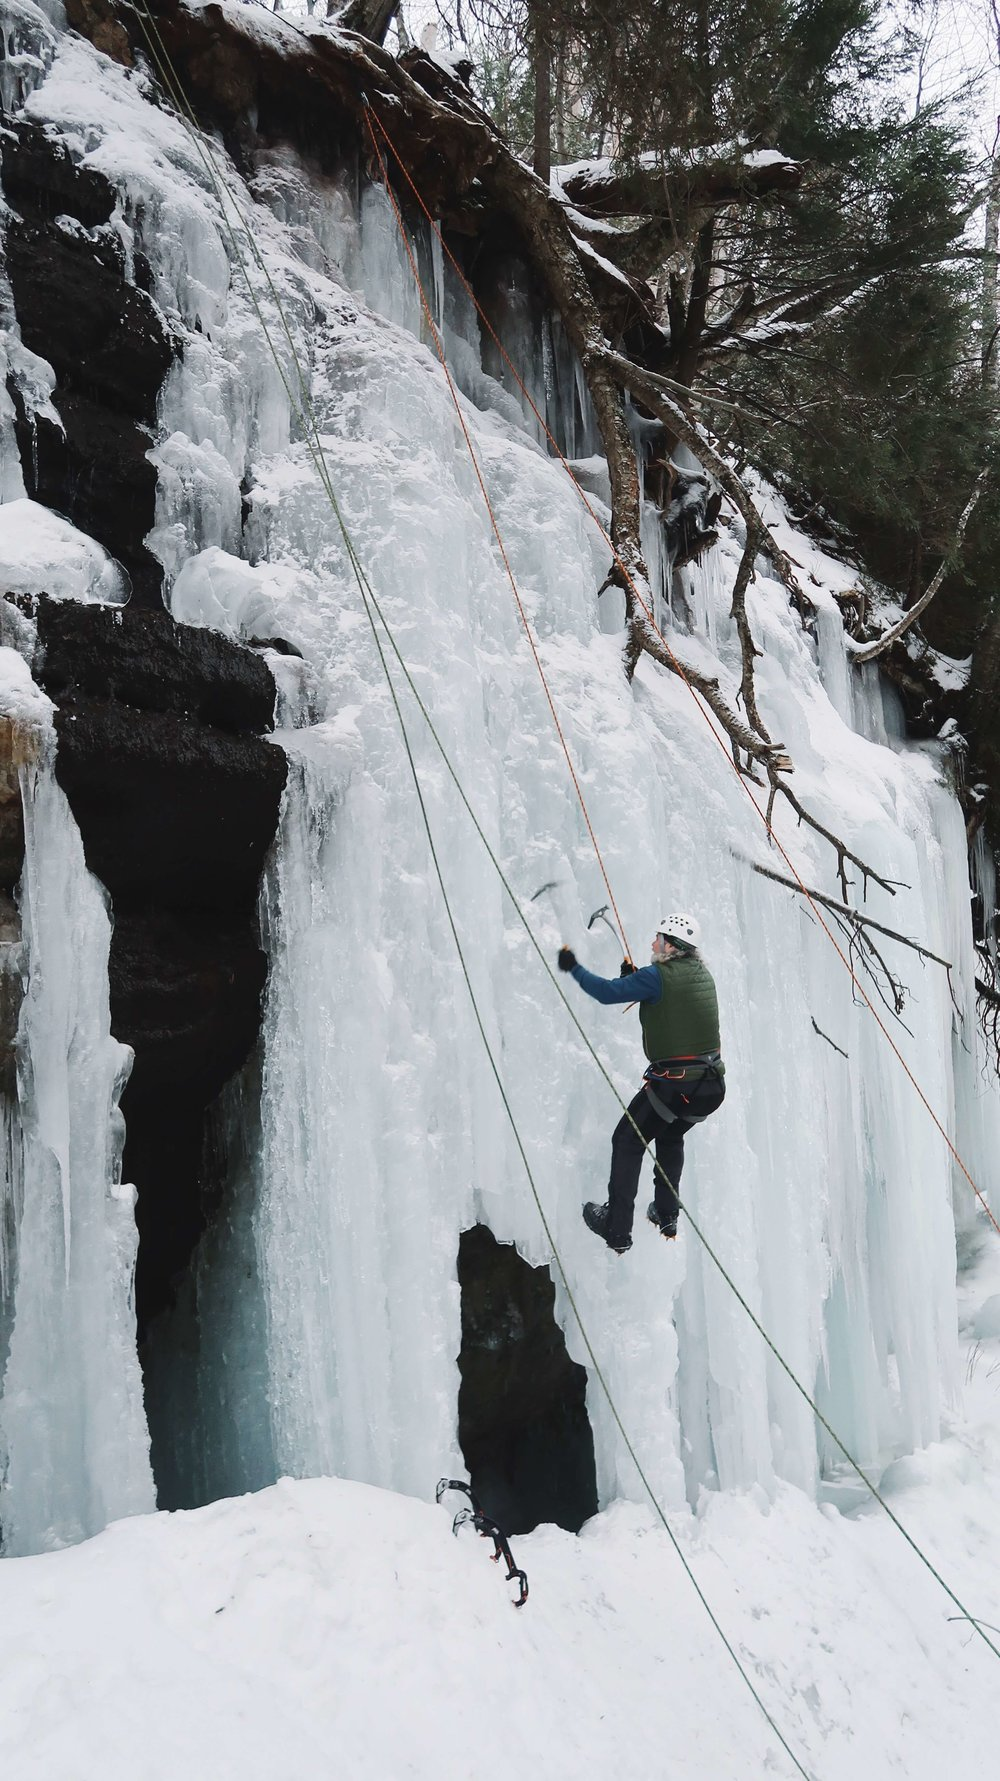 Ice Climbing at Pictured Rocks National Lakeshore: A Winter Adventure You'll Never Forget #puremichigan #travel